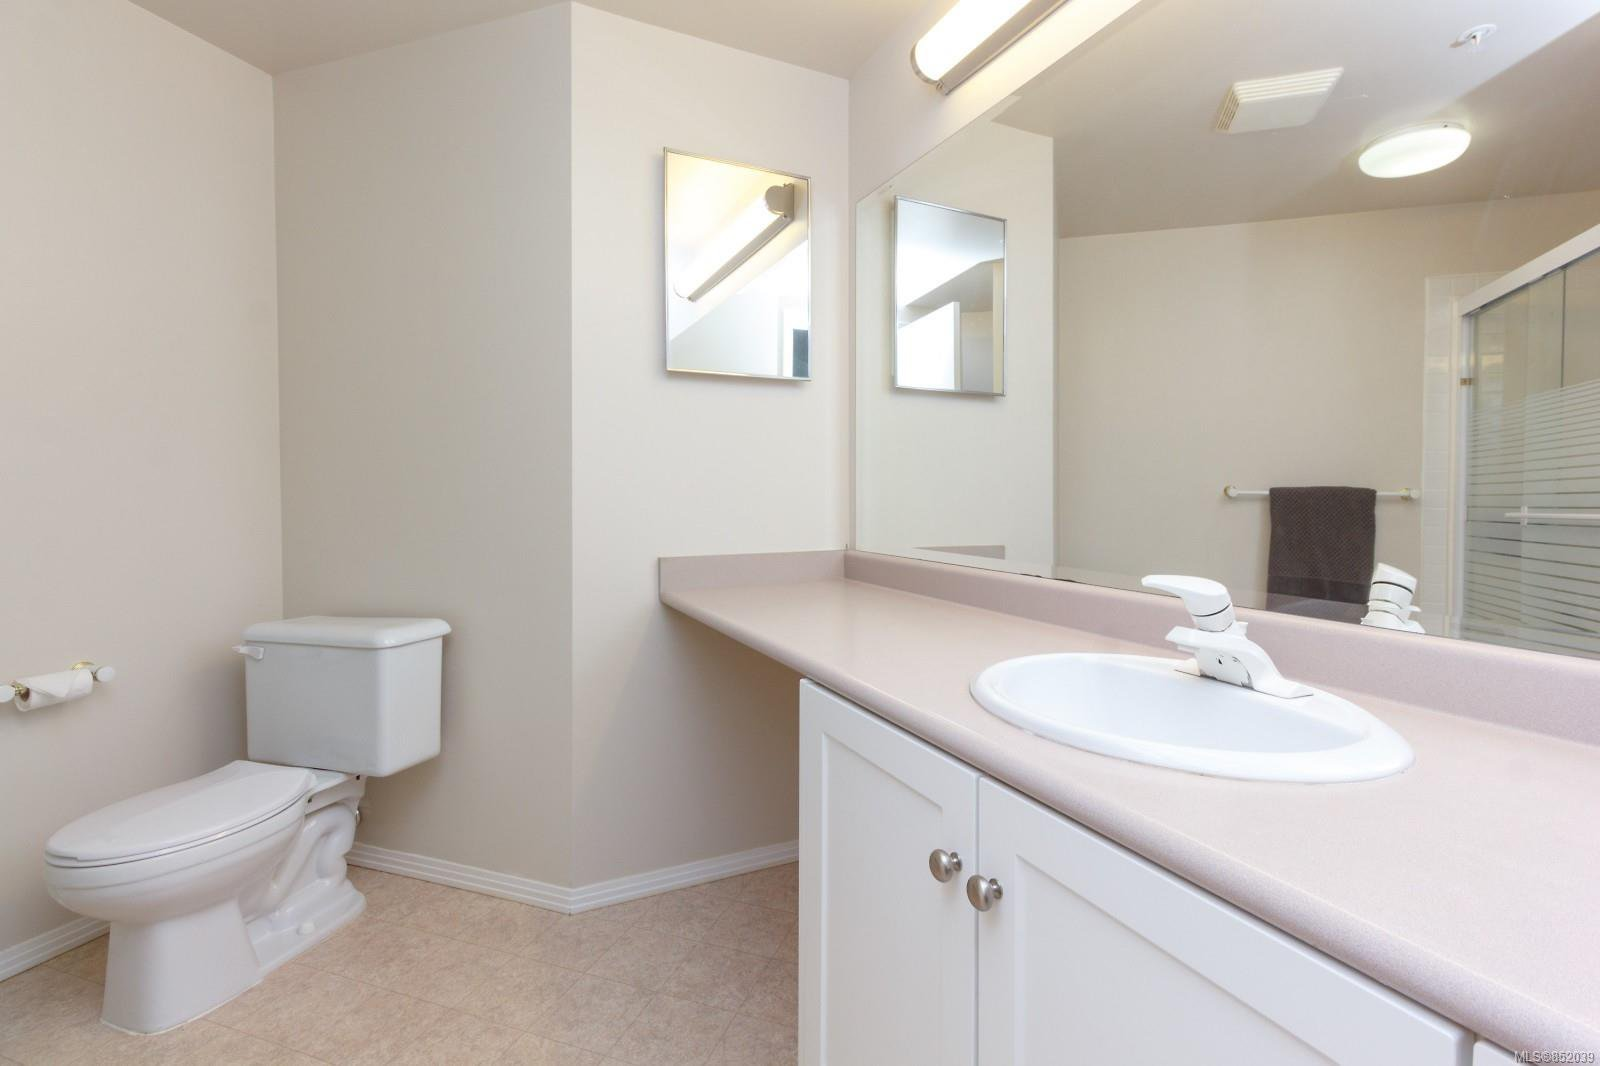 Photo 15: Photos: 109 1240 Verdier Ave in : CS Brentwood Bay Condo for sale (Central Saanich)  : MLS®# 852039